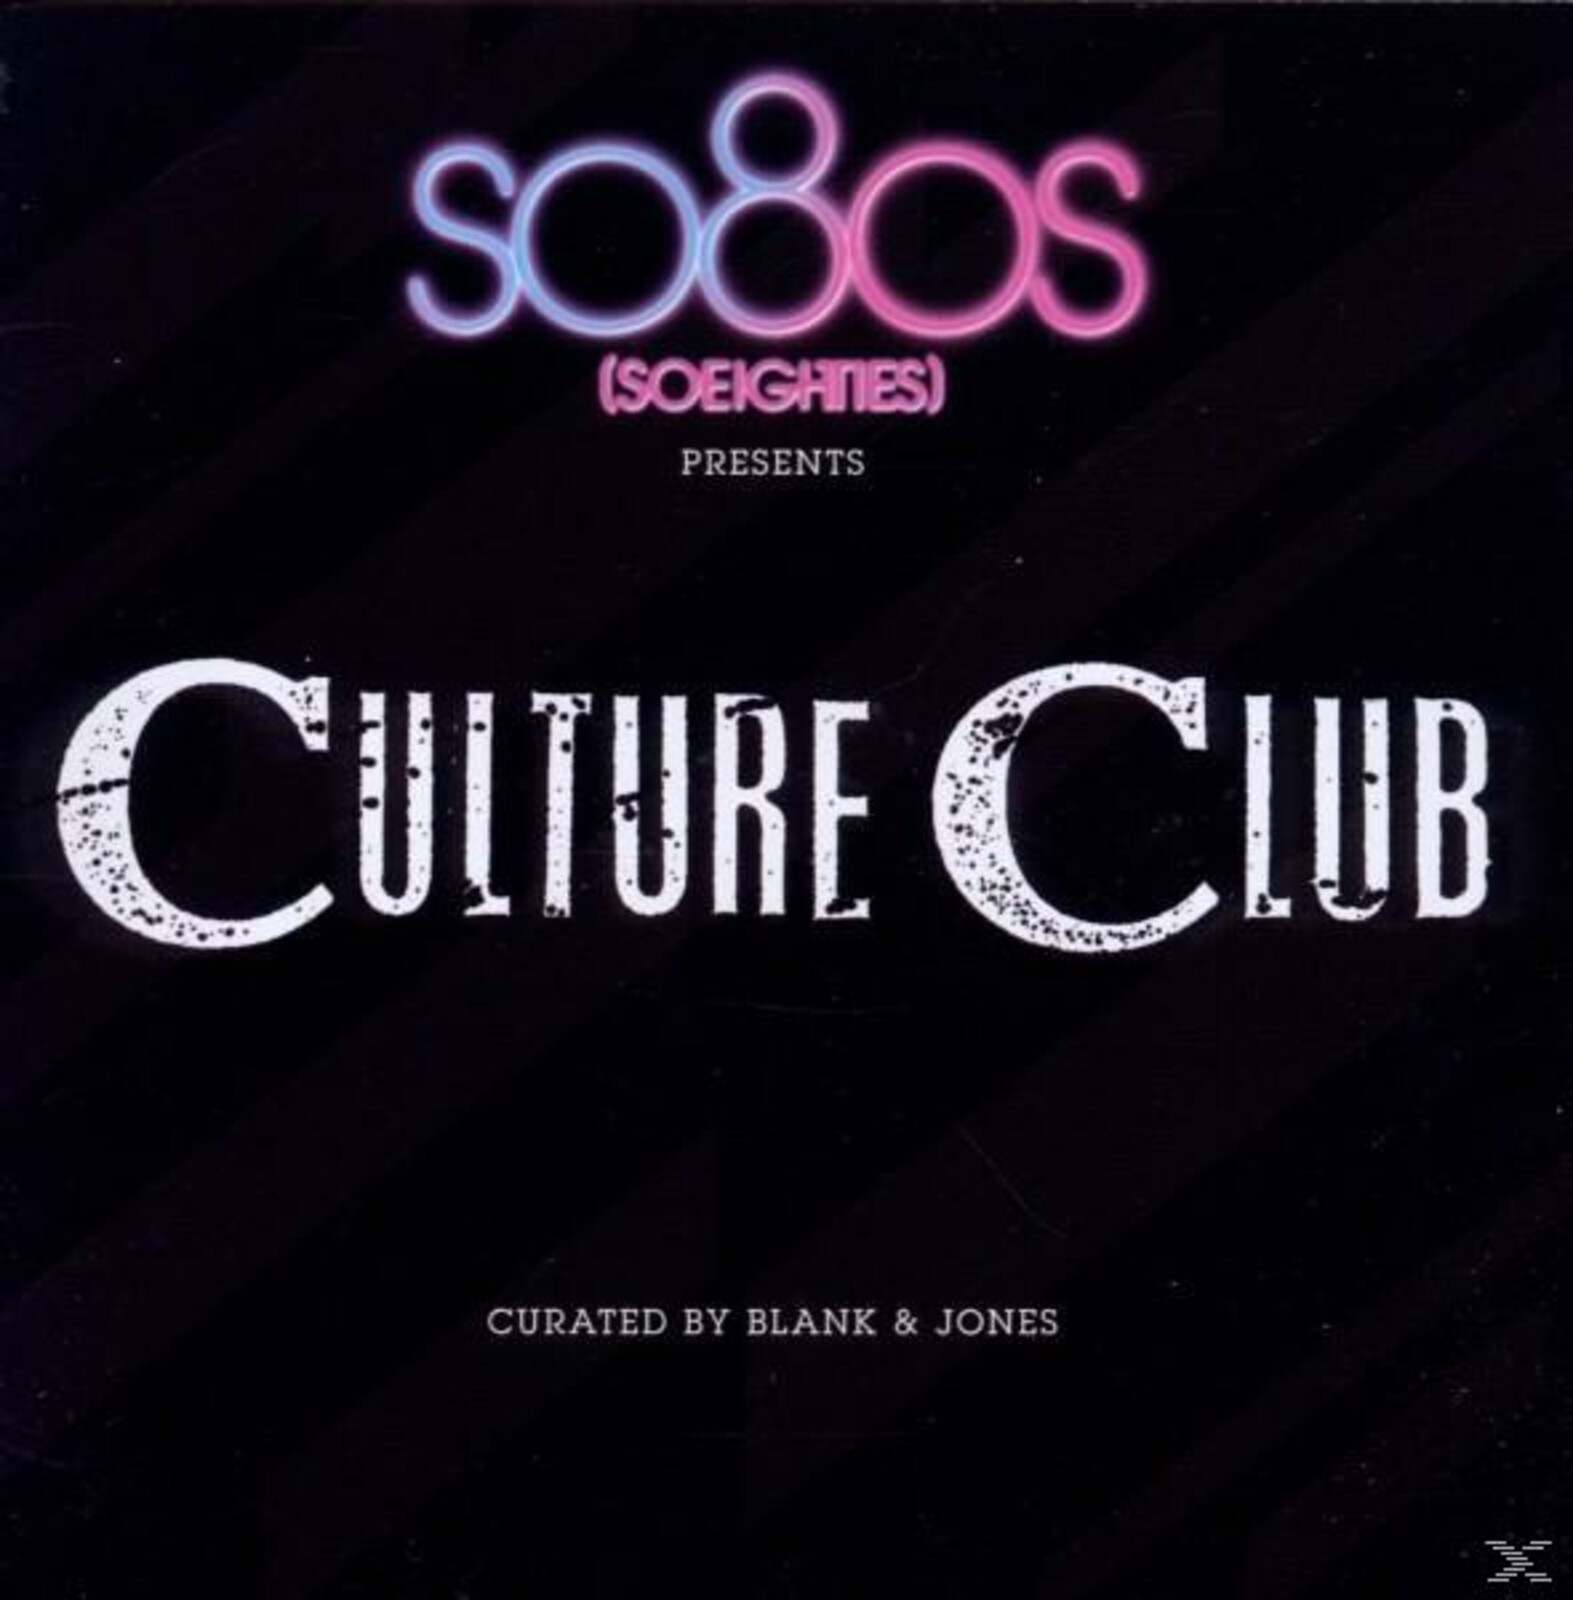 Culture Club - So80s Presents Culture Club - Curated By Blank & Jones - (CD)